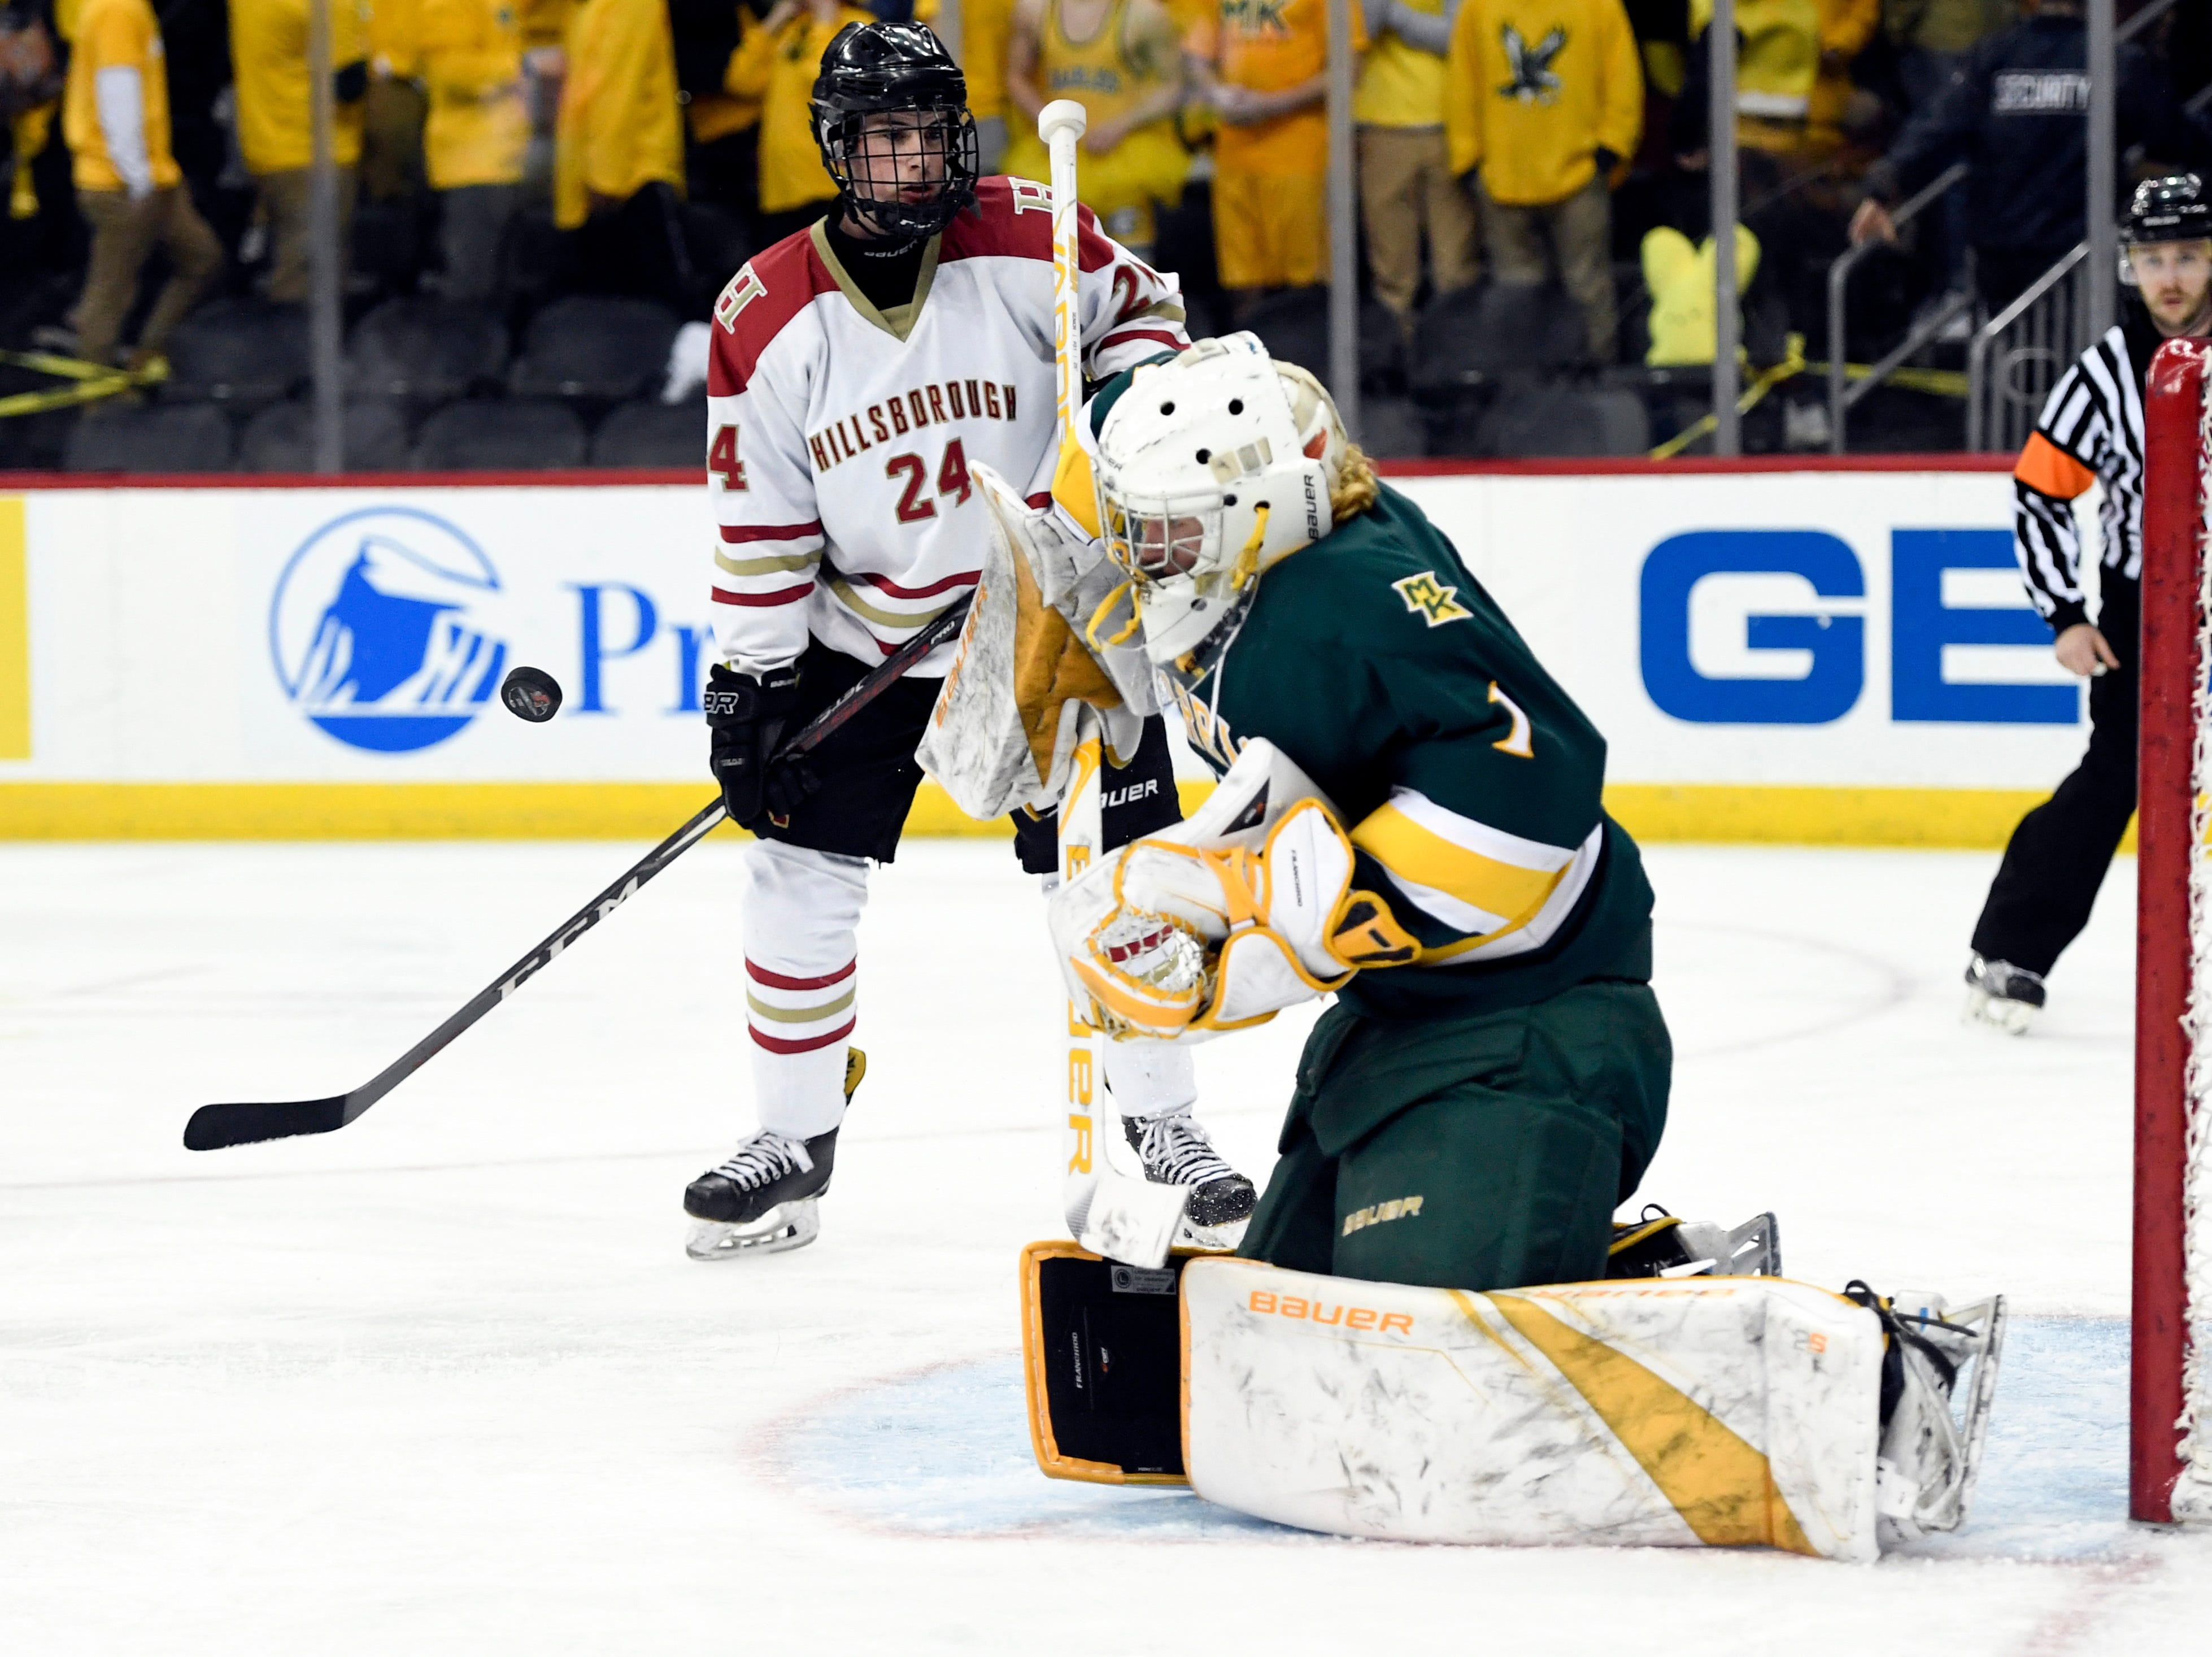 Morris Knolls/Hills goalie Ty Franchi blocks a shot in the first period during the Public A ice hockey final at the Prudential Center on Monday, March 4, 2019, in Newark.